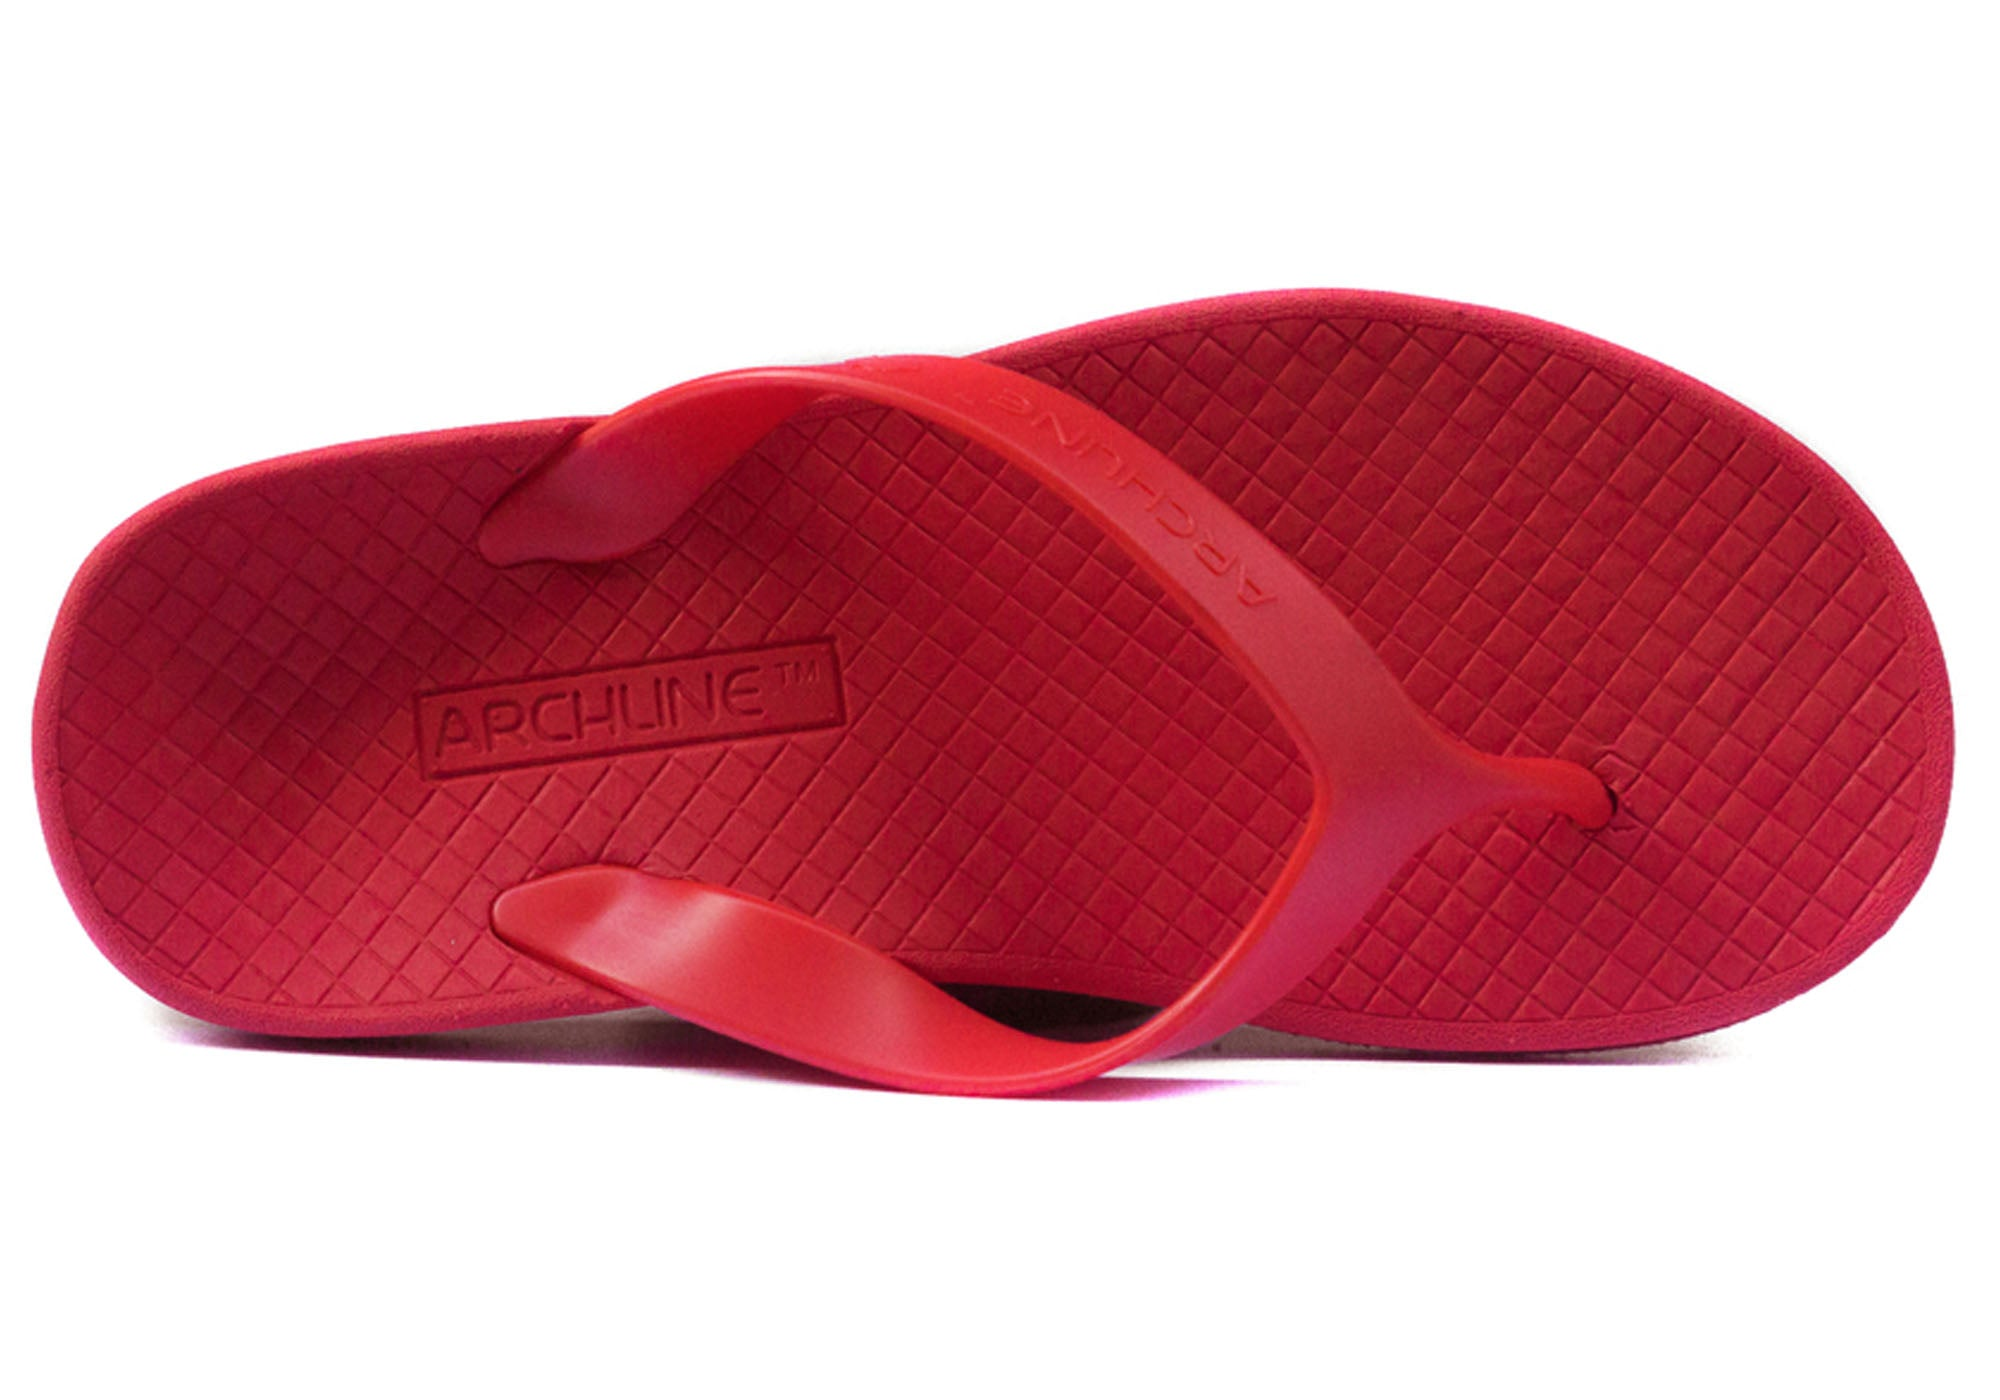 7465d0905 Archline Womens Comfortable Supportive Orthotic Flip Flops Thongs ...